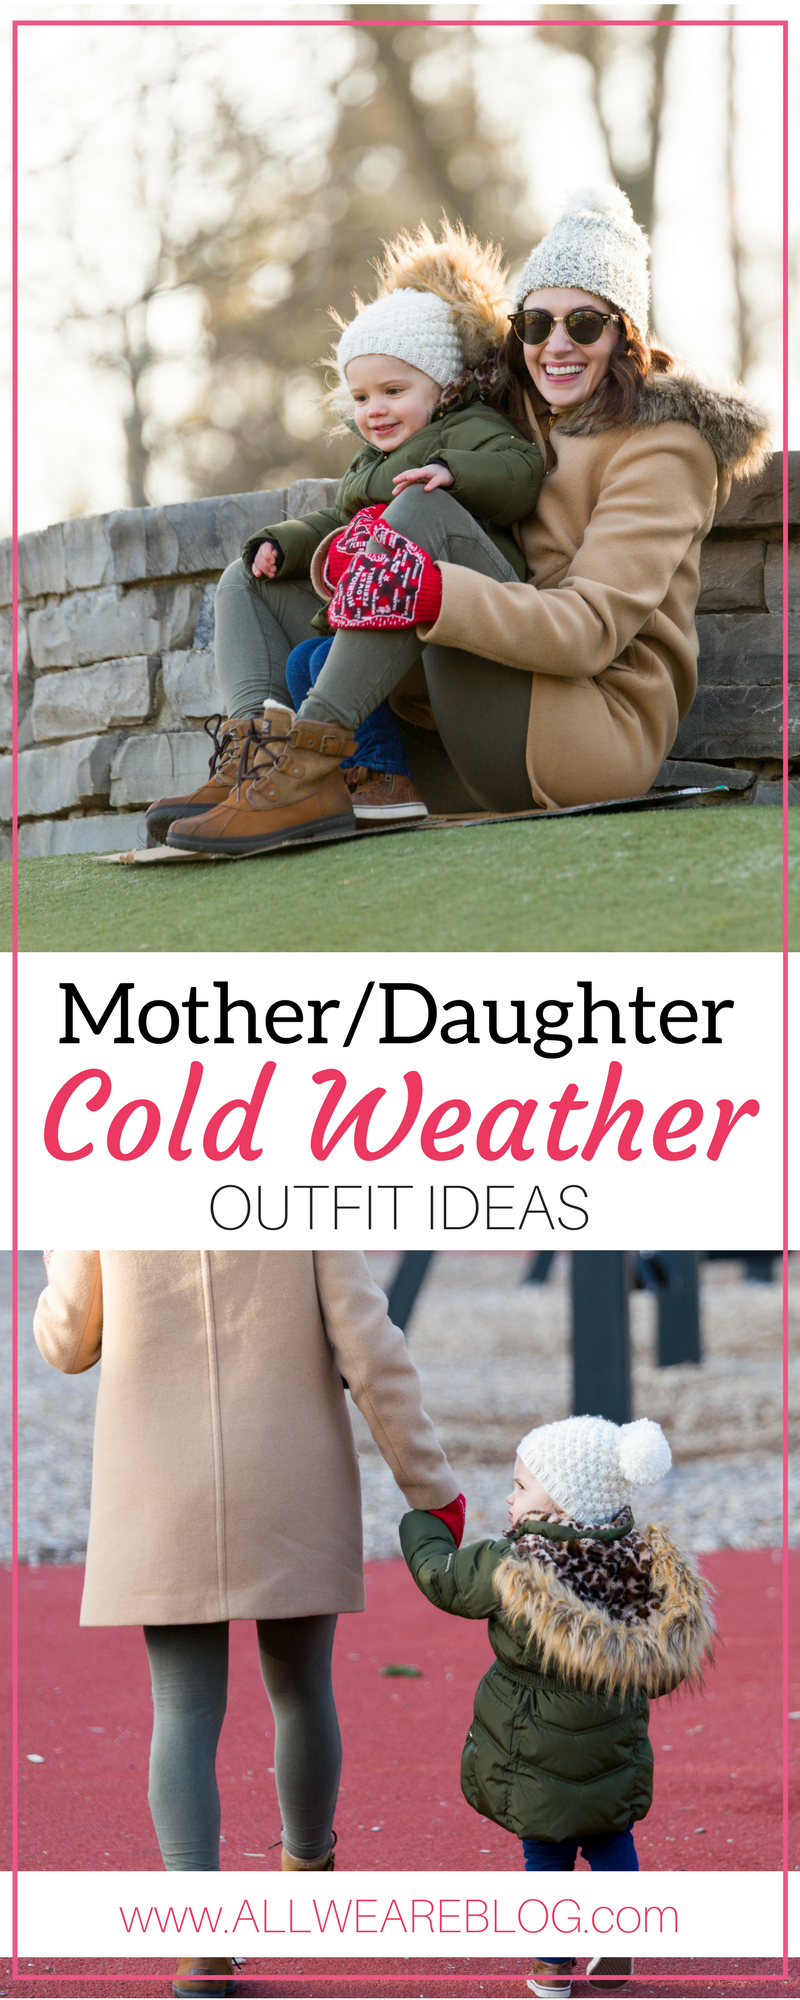 mother and daughter cold weather outfit ideas